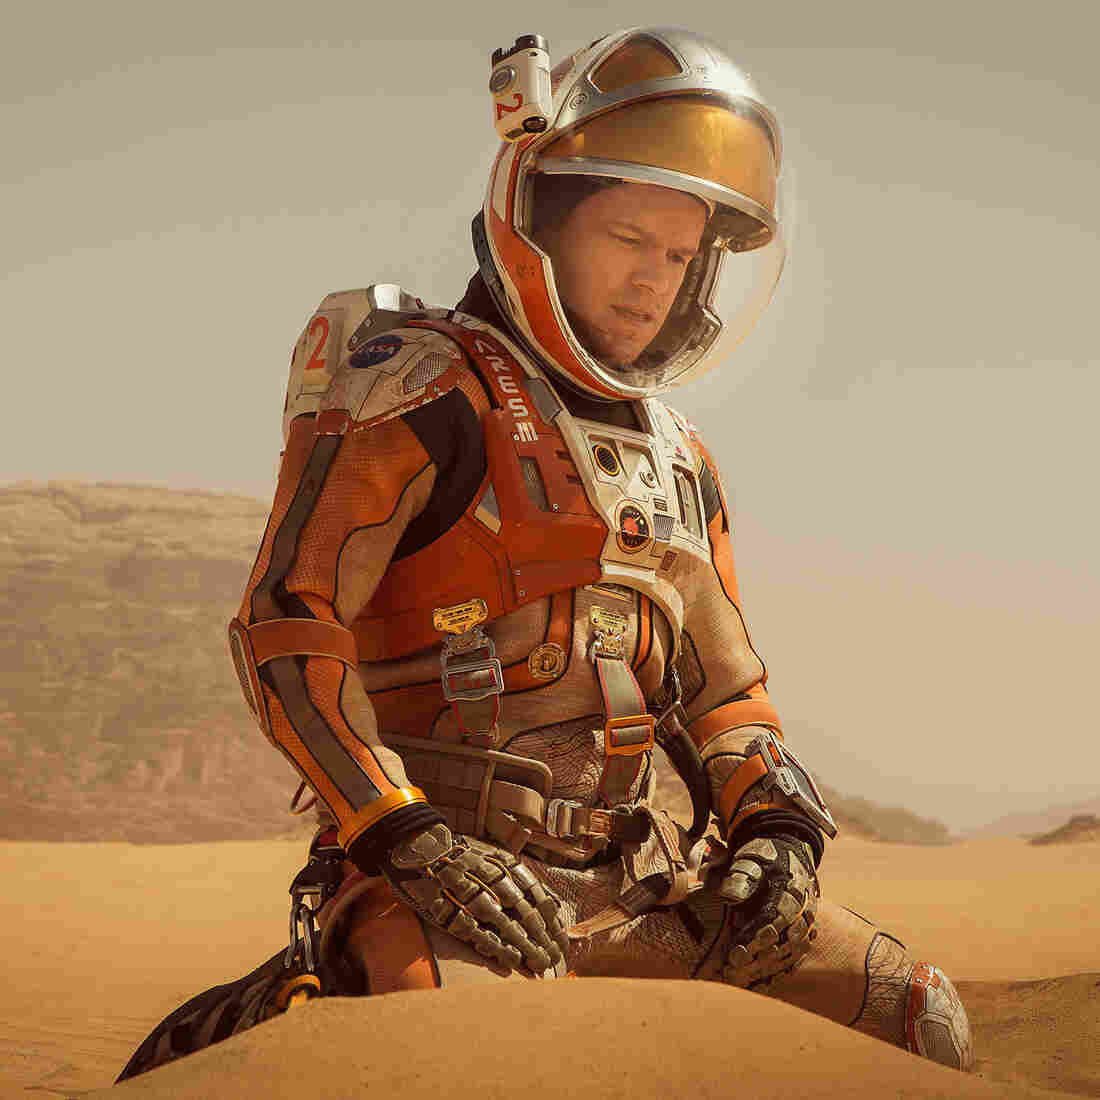 Ridley Scott Finds An Optimistic Space In 'The Martian'